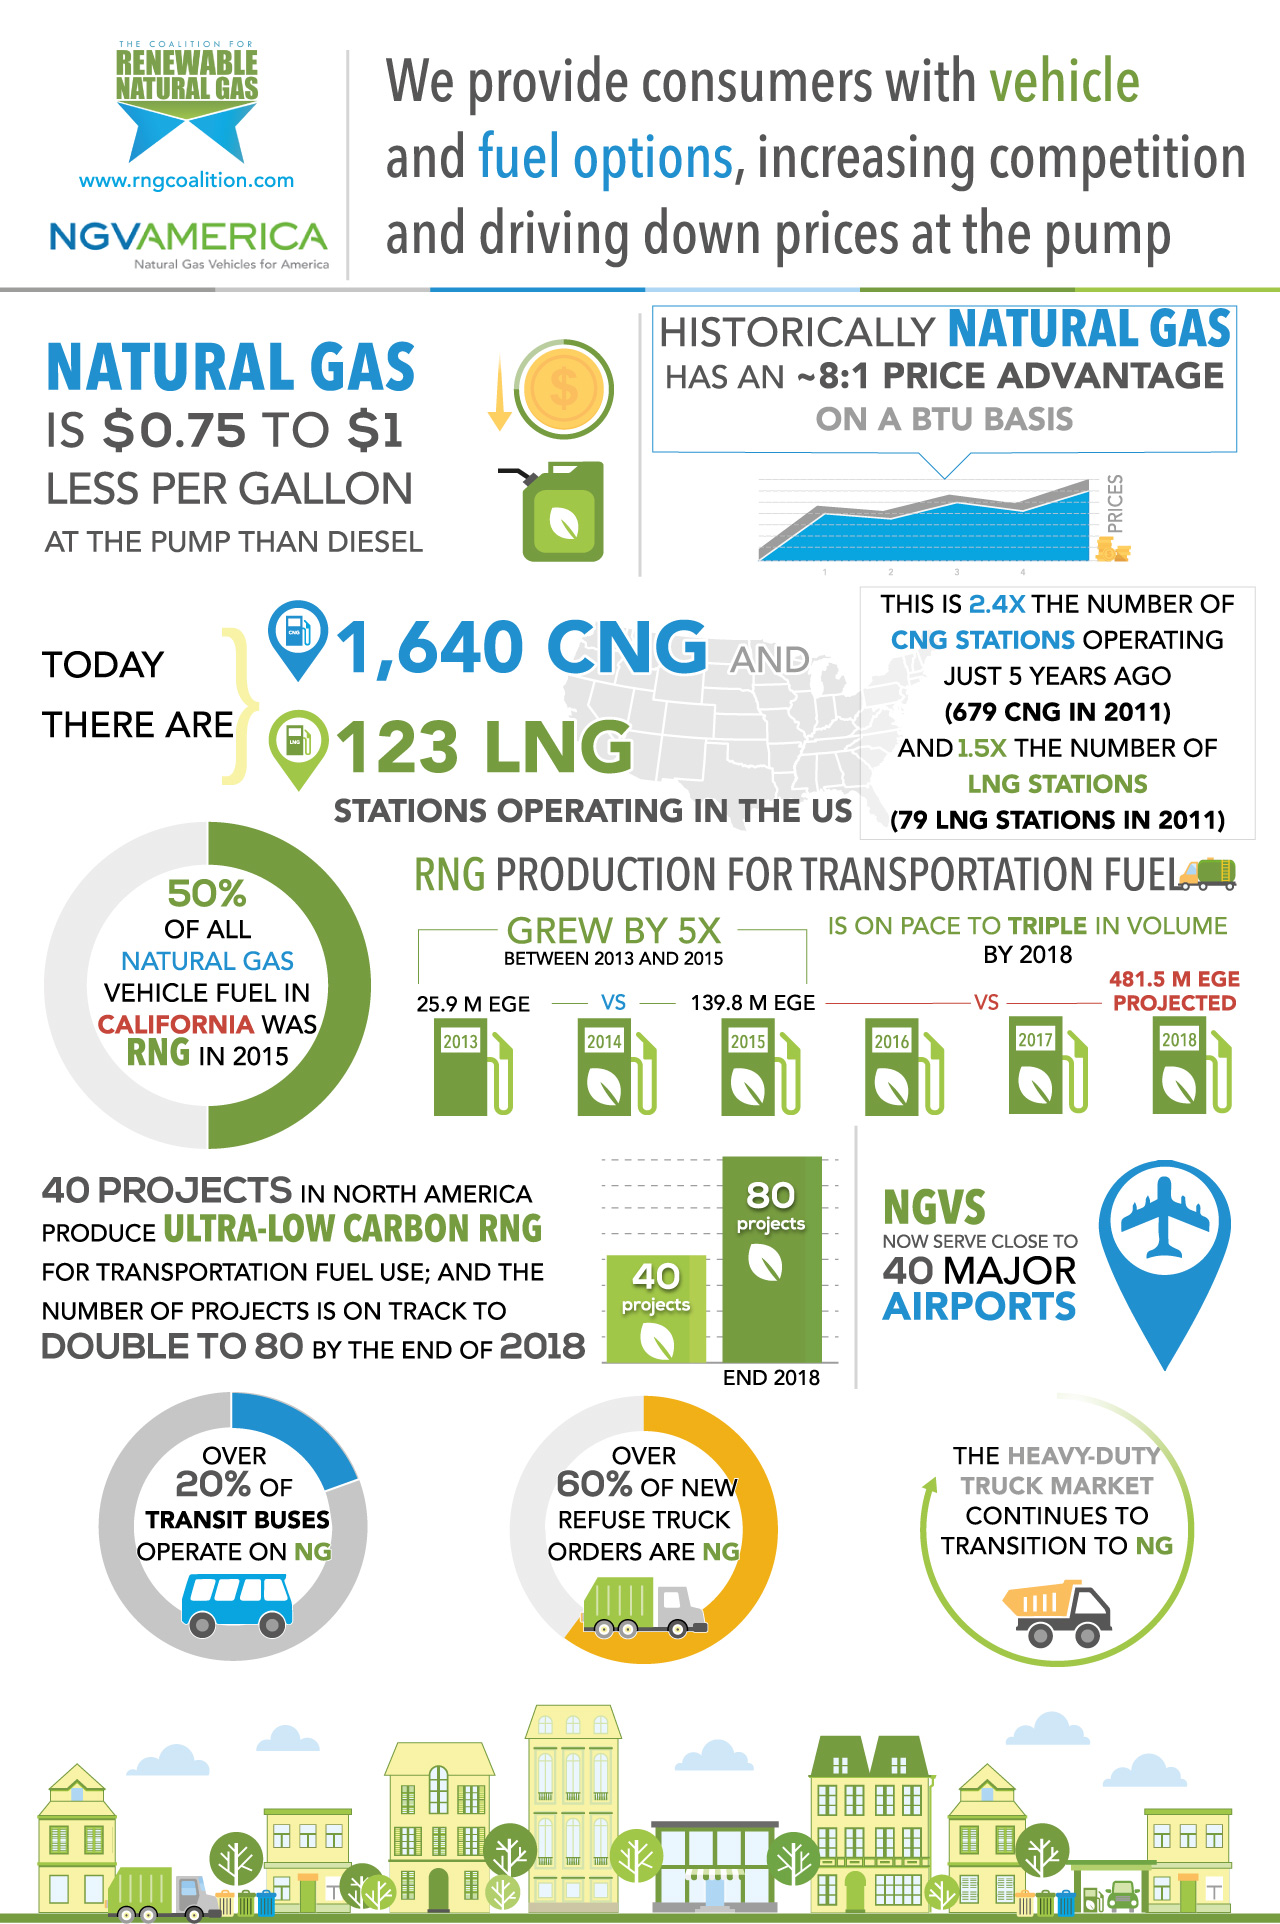 03-FUEL-AND-ENVIRONMENT-INFOGRAPHIC-FINAL.jpg